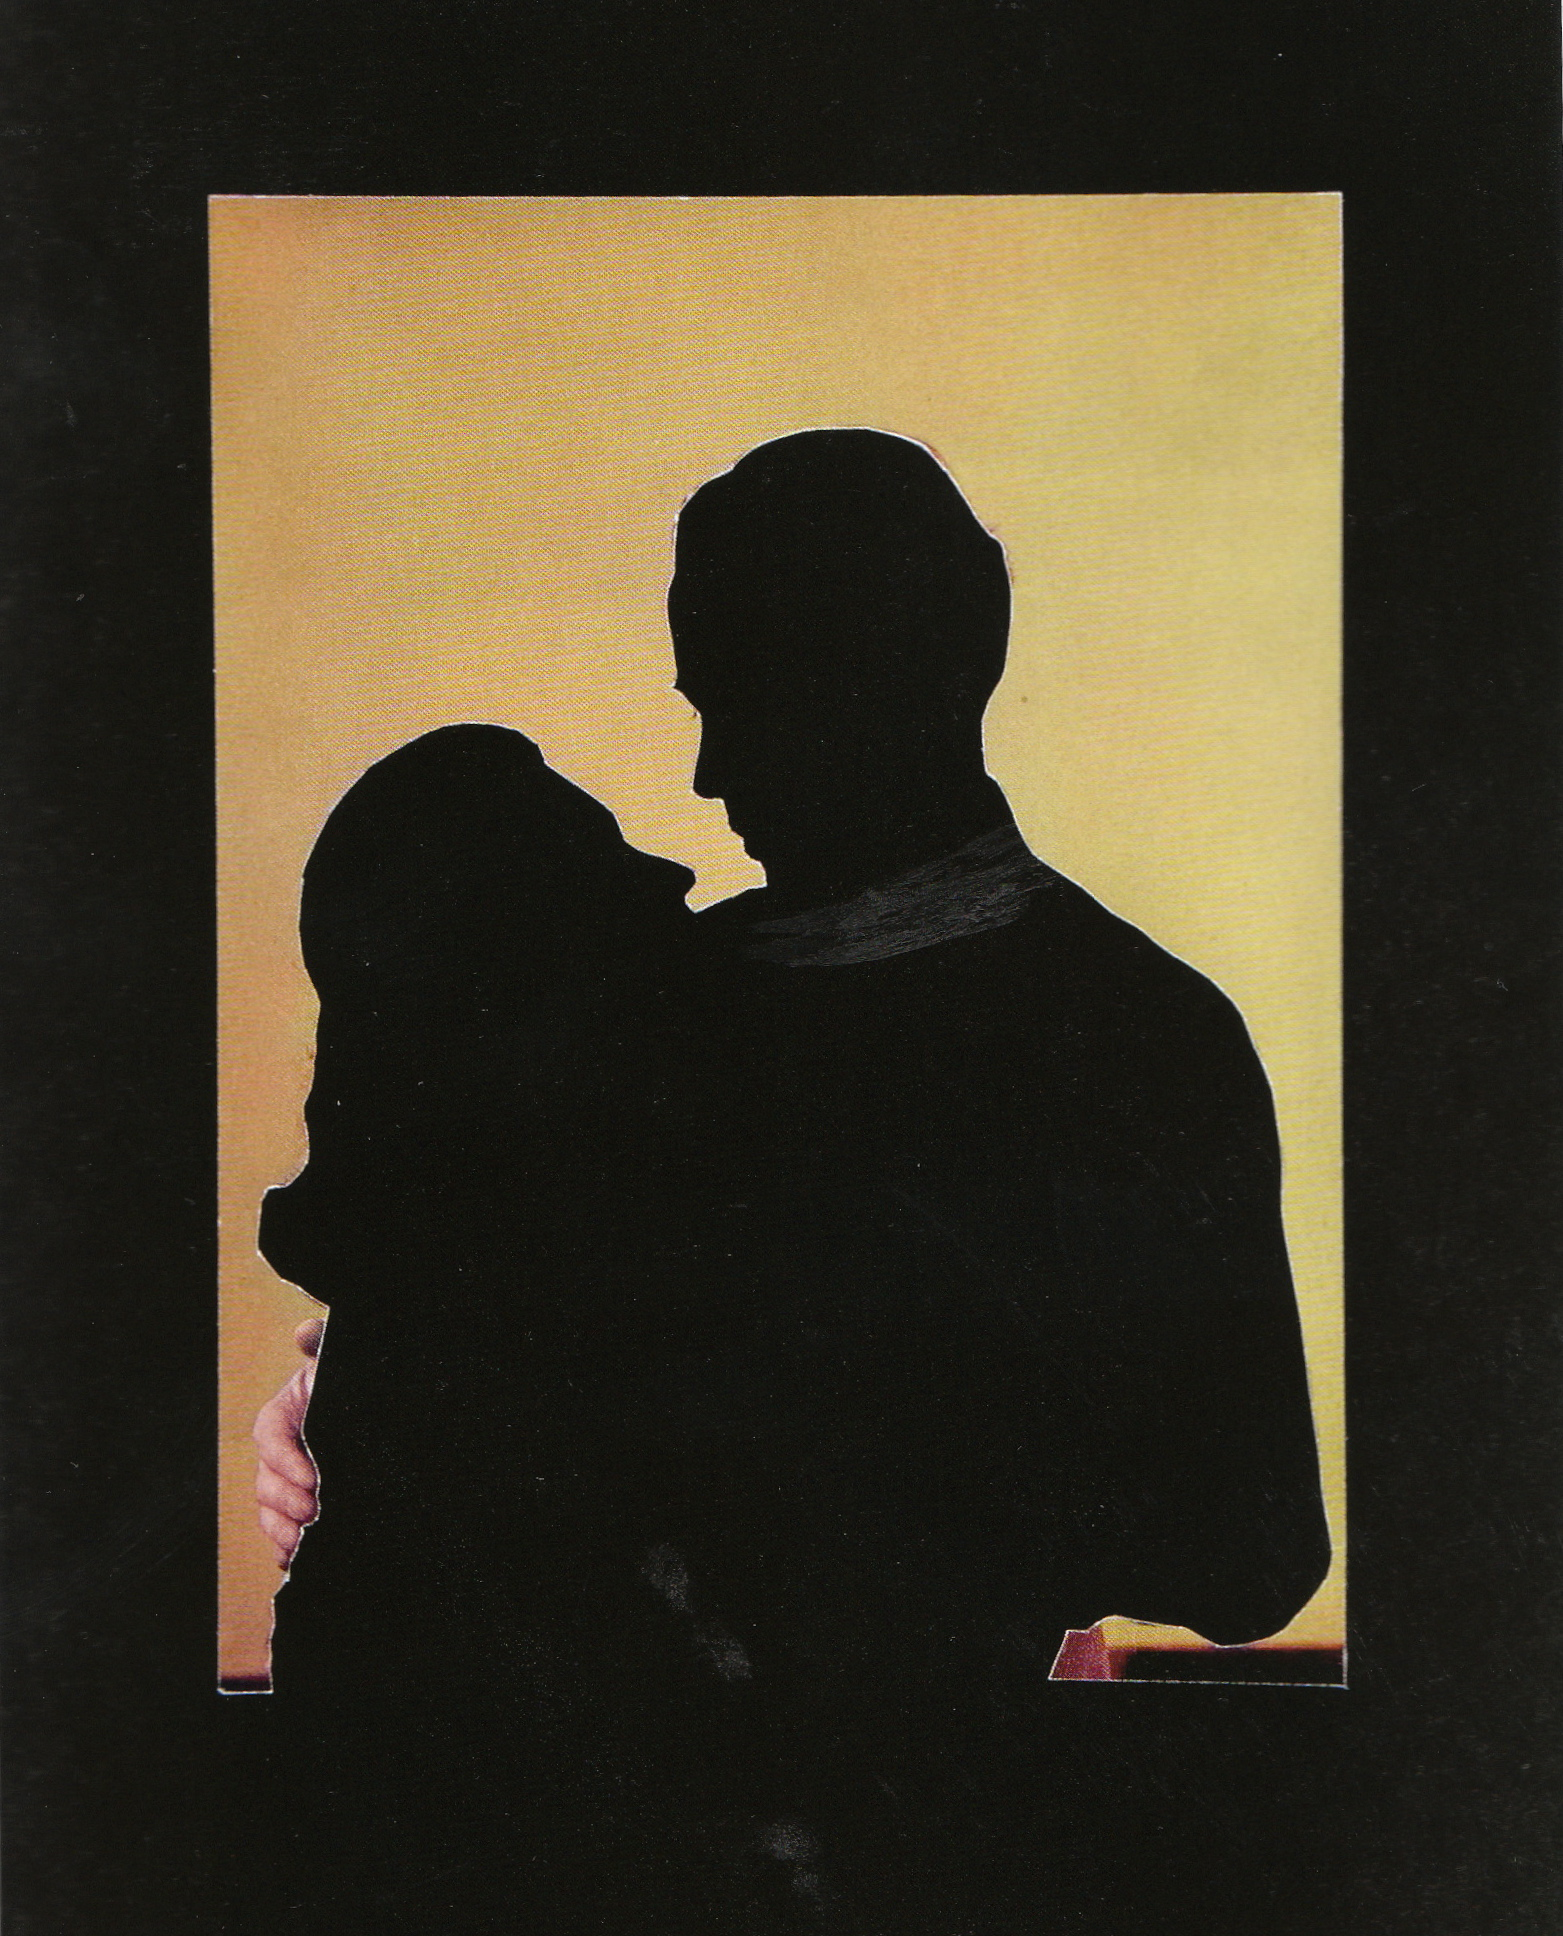 Couple, John Stezaker